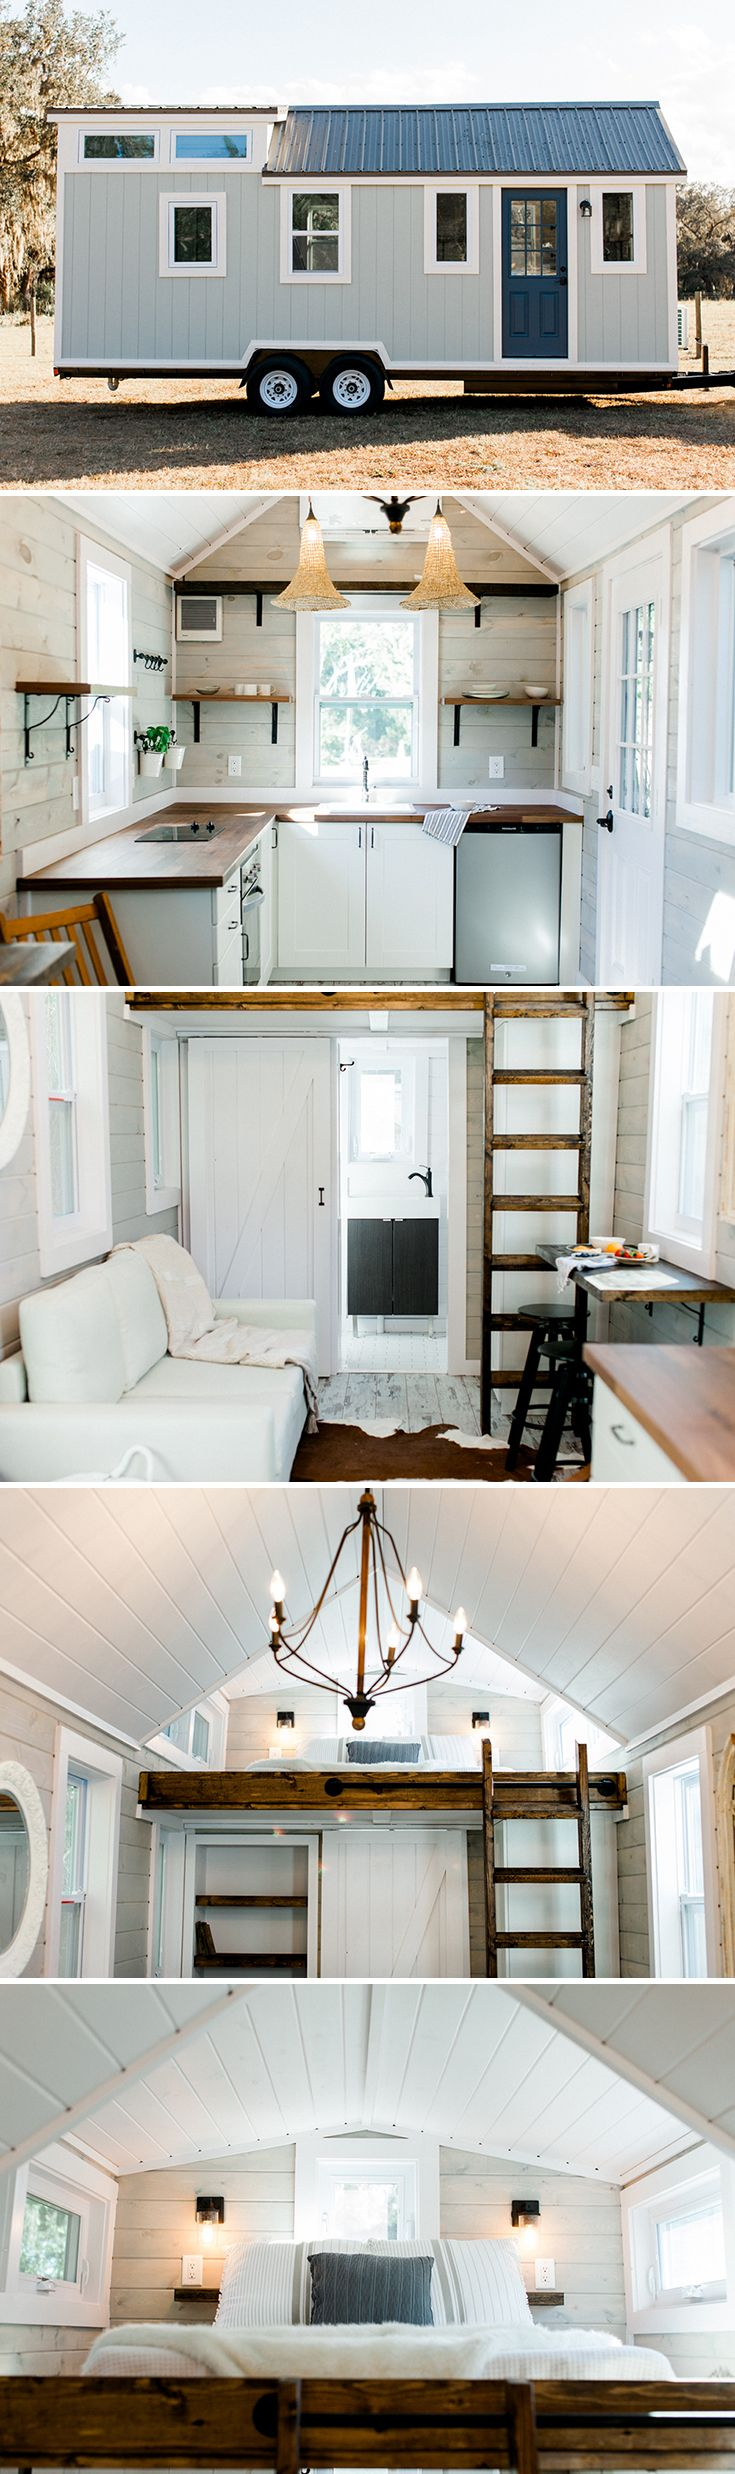 View toward kitchen the alpha tiny home by new frontier tiny homes - Tiny Marta By Sanctuary Tiny Homes